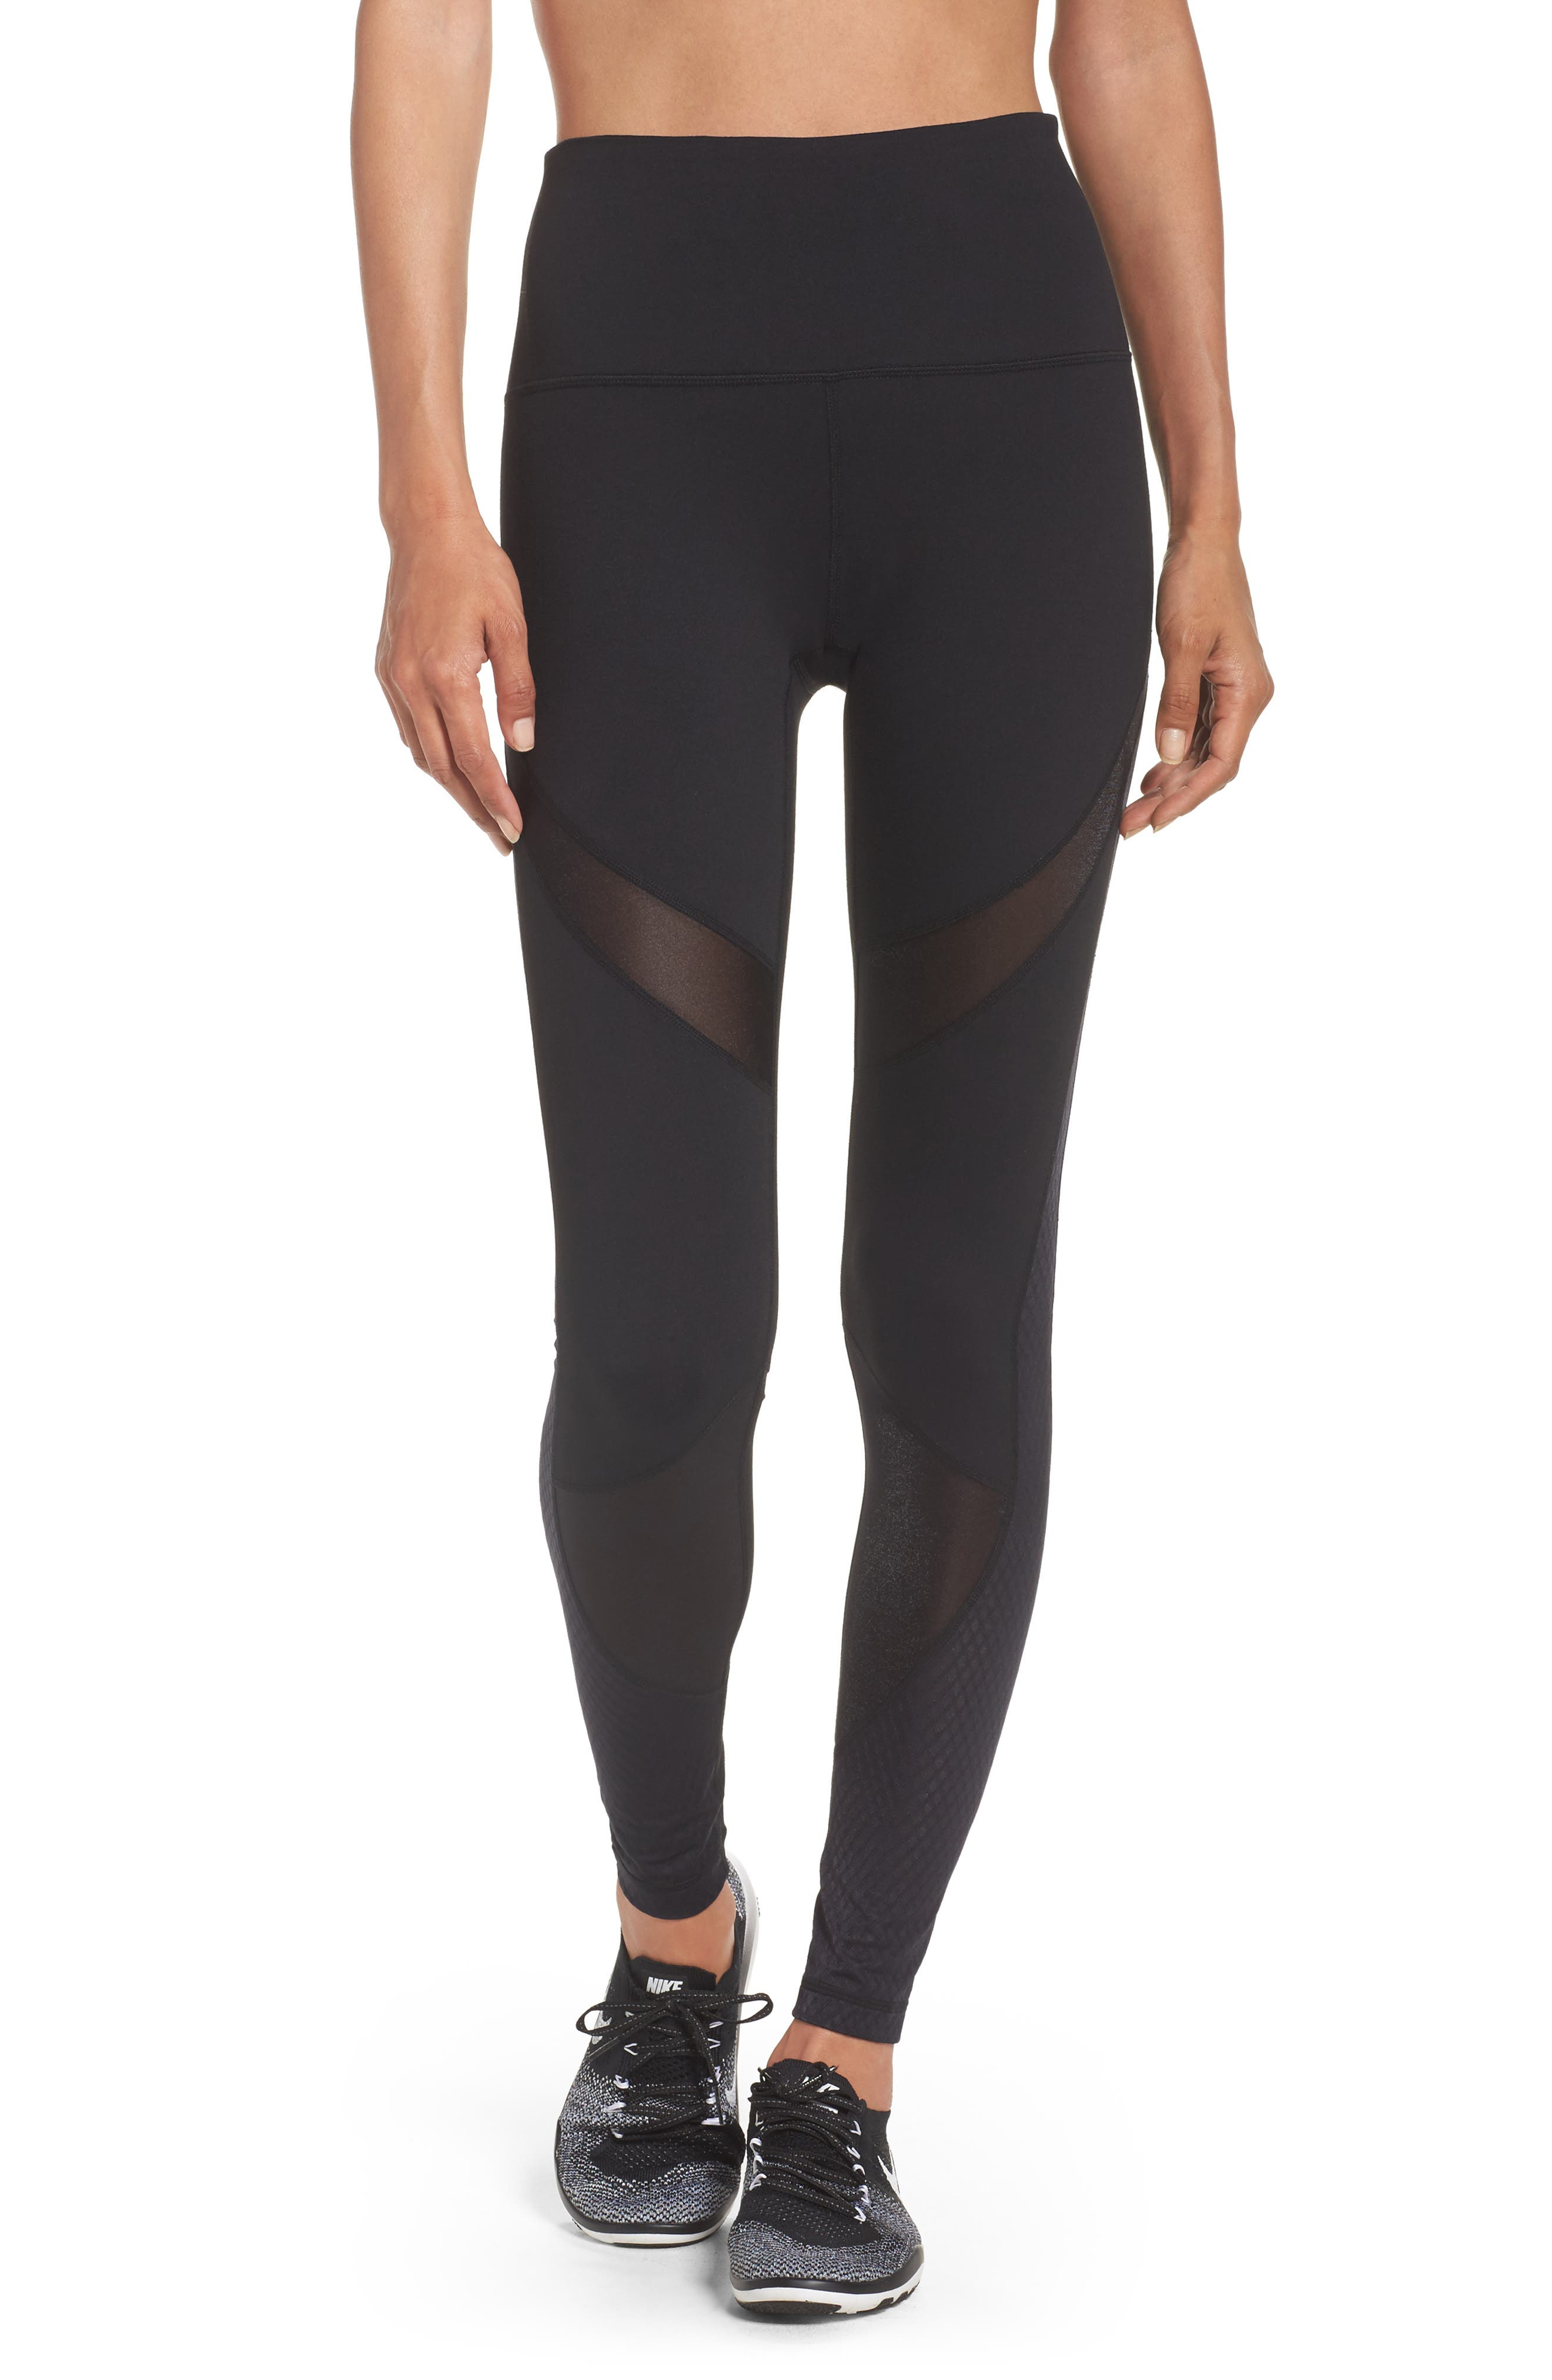 Zella Knock Out High Waist Leggings